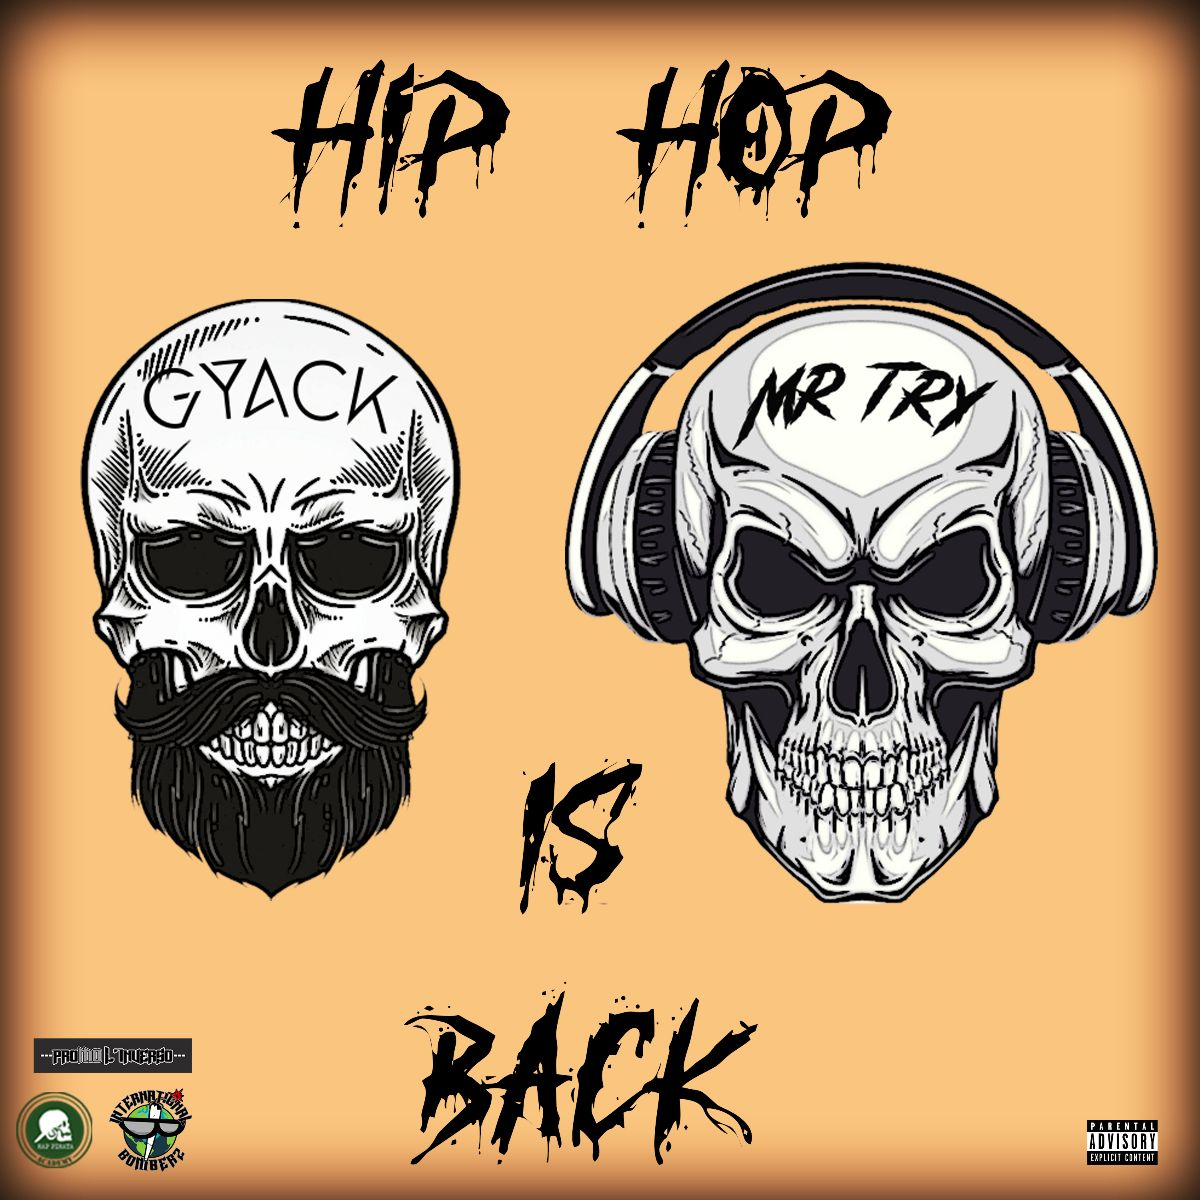 La cover dell'EP Hip Hop is back di Gyack & Mr. Try